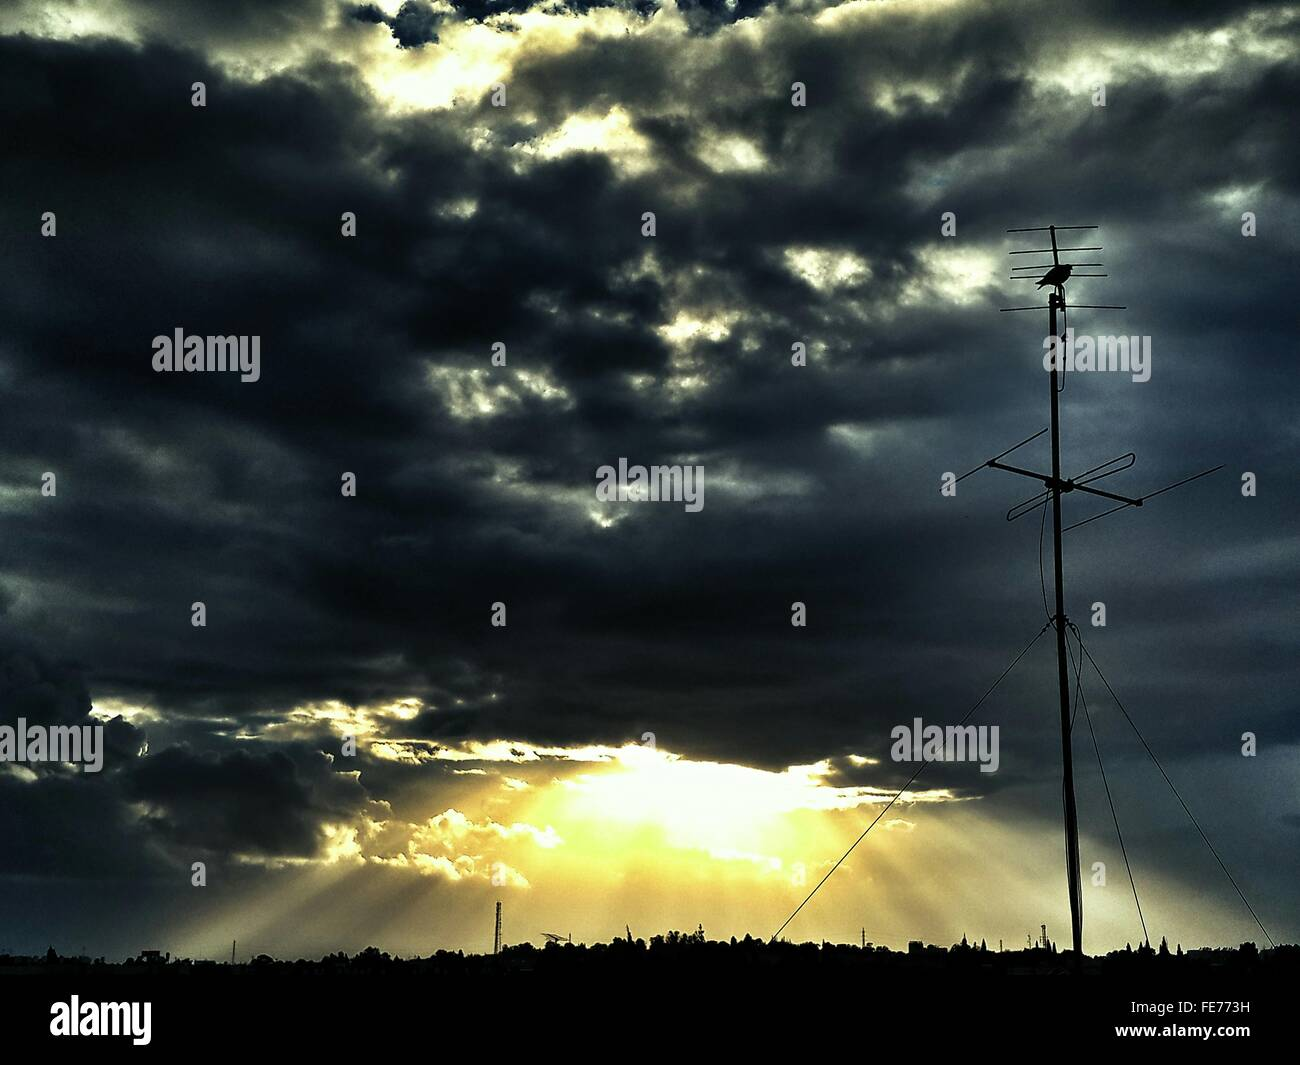 Low Angle View Of Silhouette Television Aerial Against Cloudy Sky During Sunset - Stock Image